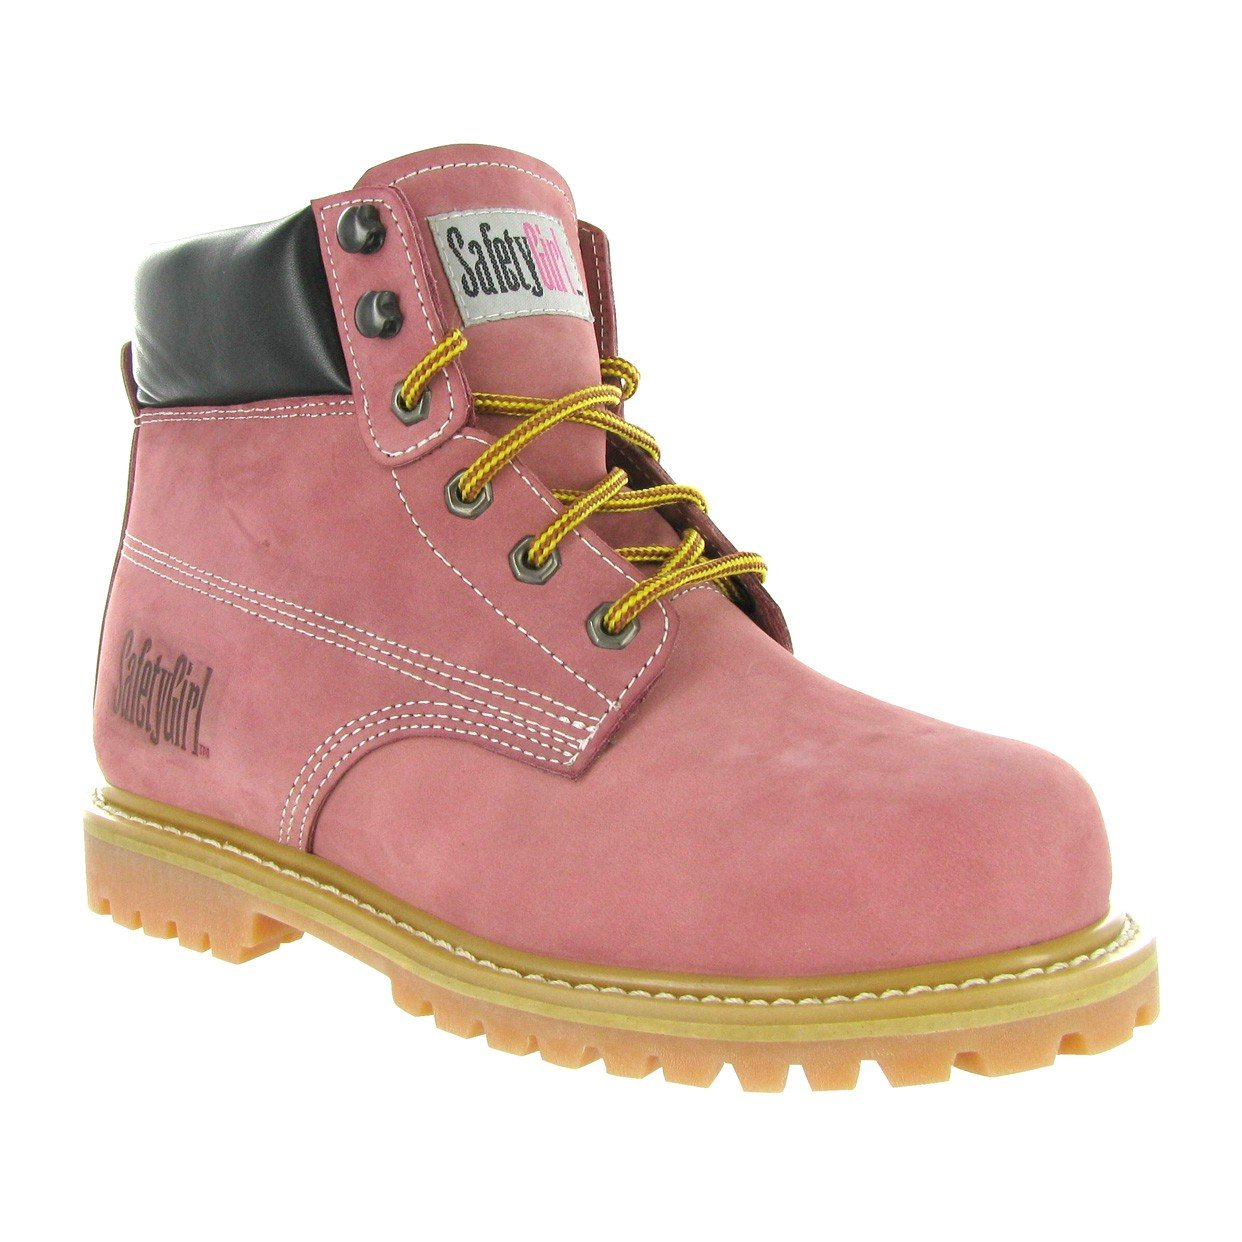 Safety Girl GS003-Lt Pink-8.5M Steel Toe Work Boots - Light Pink - 8.5M, English, Capacity, Volume, Leather, 8.5M, Pink () by Safety Girl